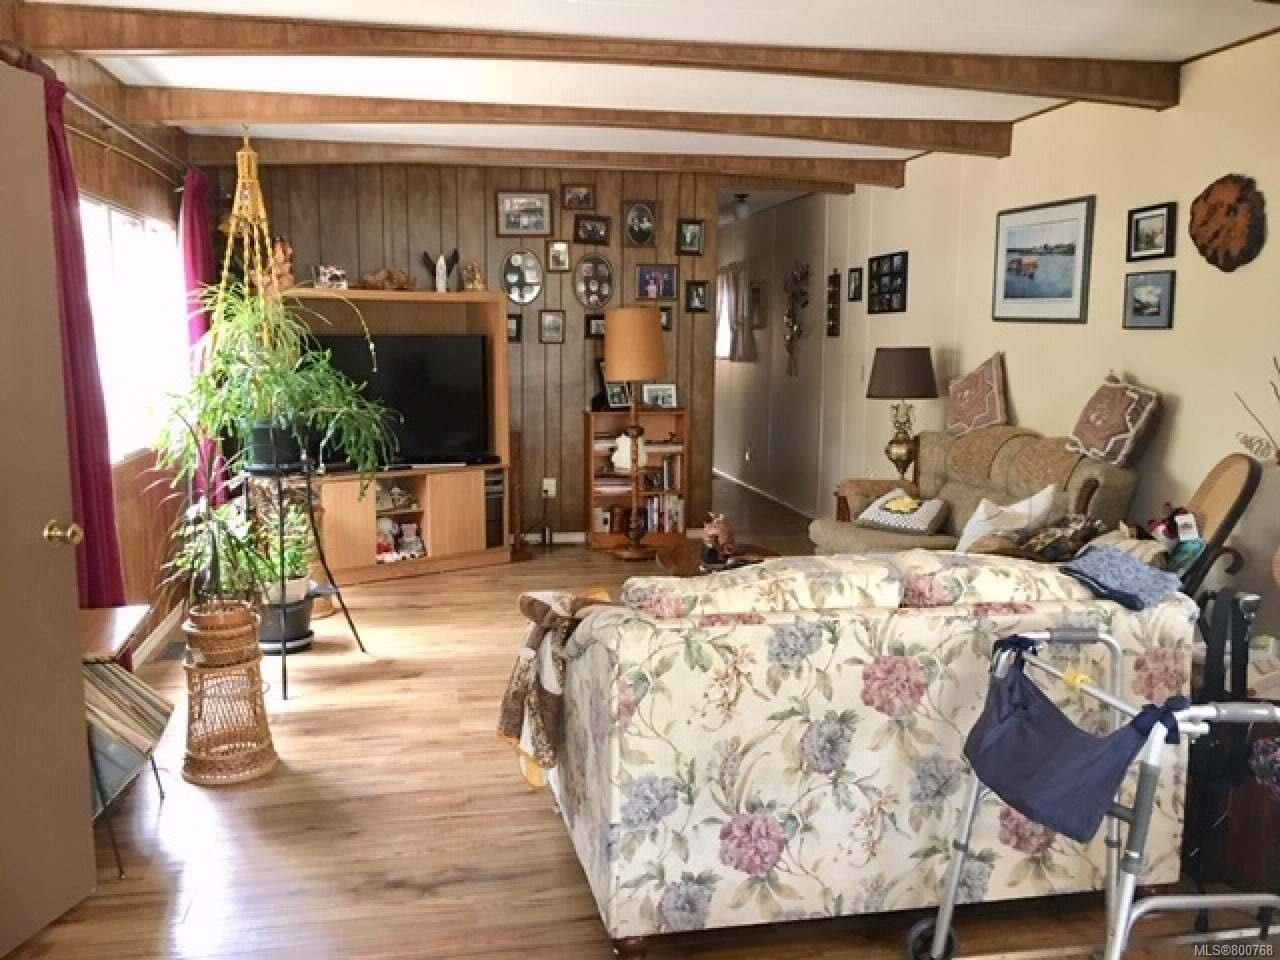 Photo 4: Photos: 57 951 Homewood Rd in CAMPBELL RIVER: CR Campbell River Central Manufactured Home for sale (Campbell River)  : MLS®# 800768